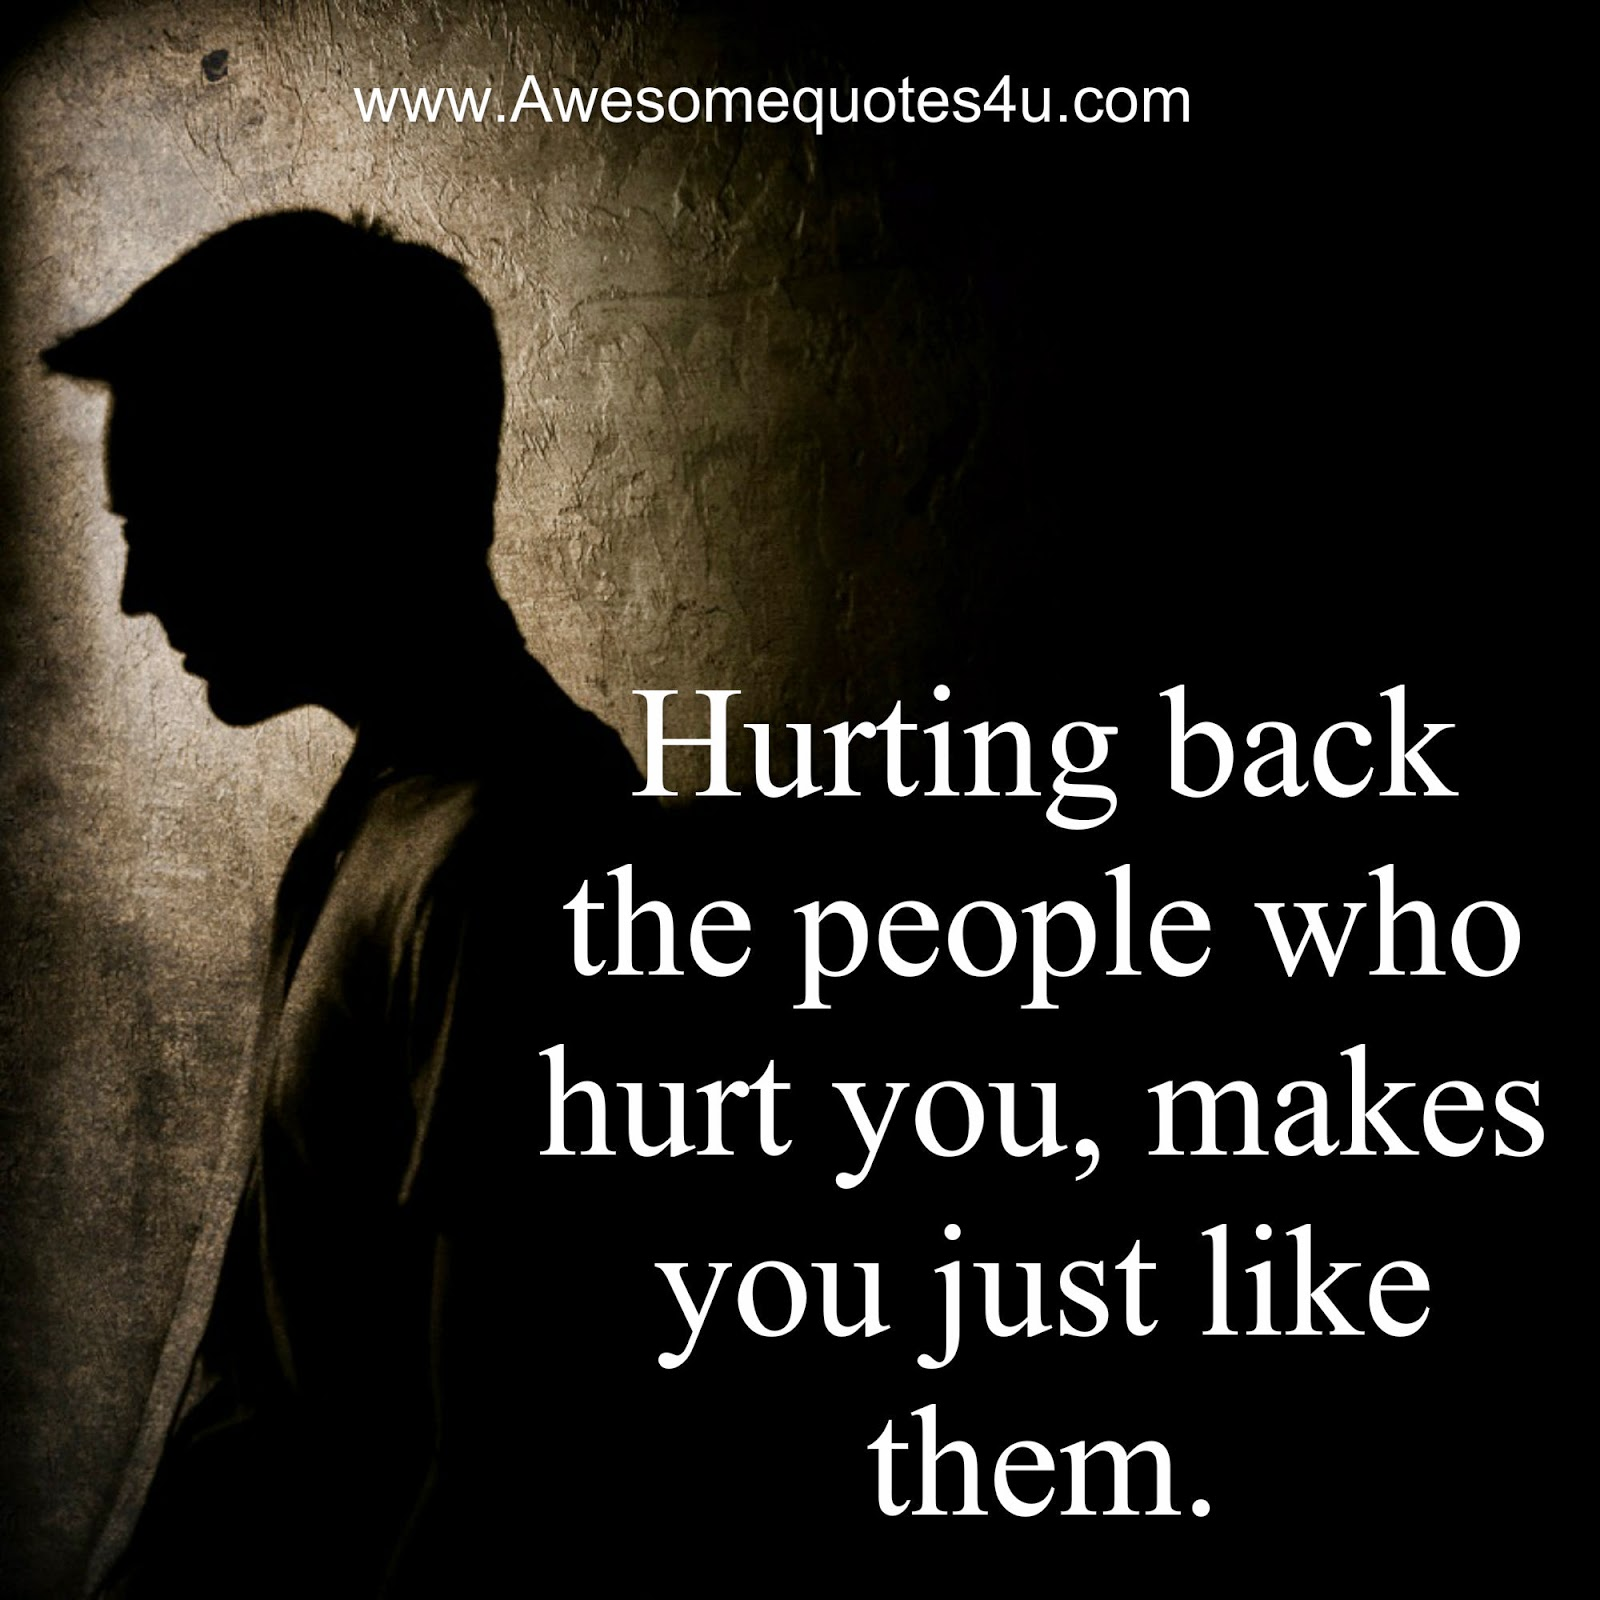 Quotes About Hurt Awesome Quotes Hurting Back The People Who Hurt You